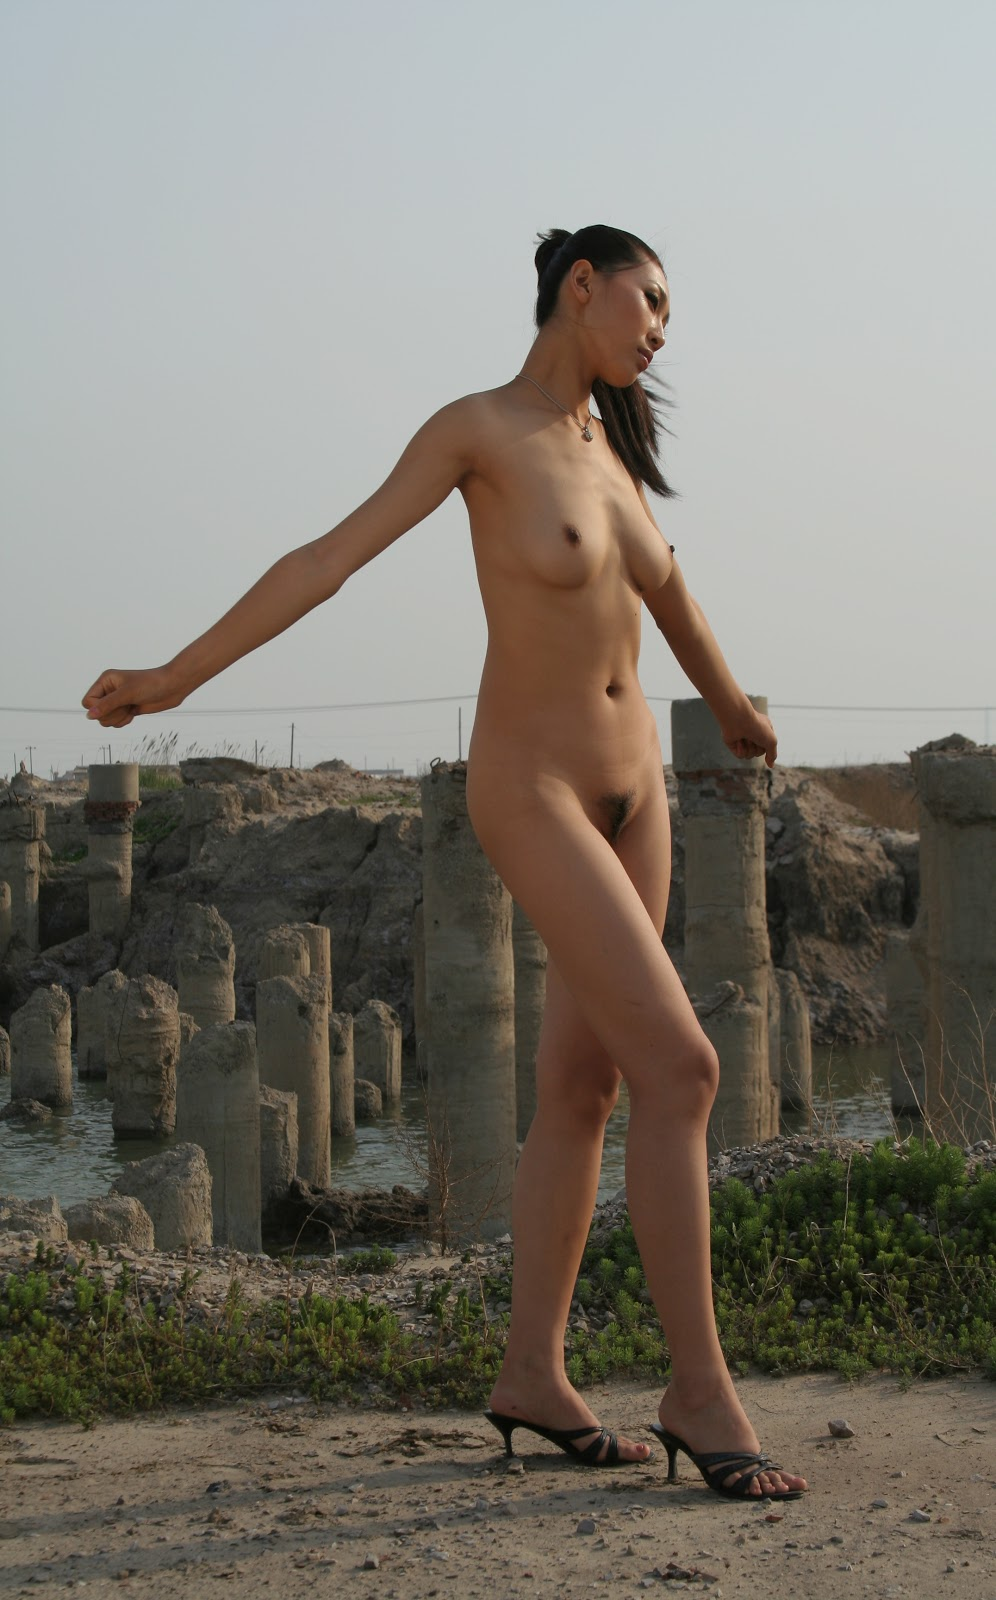 Chinese Nude_Art_Photos_-_188_-_WeiWei.rar chinese 07040